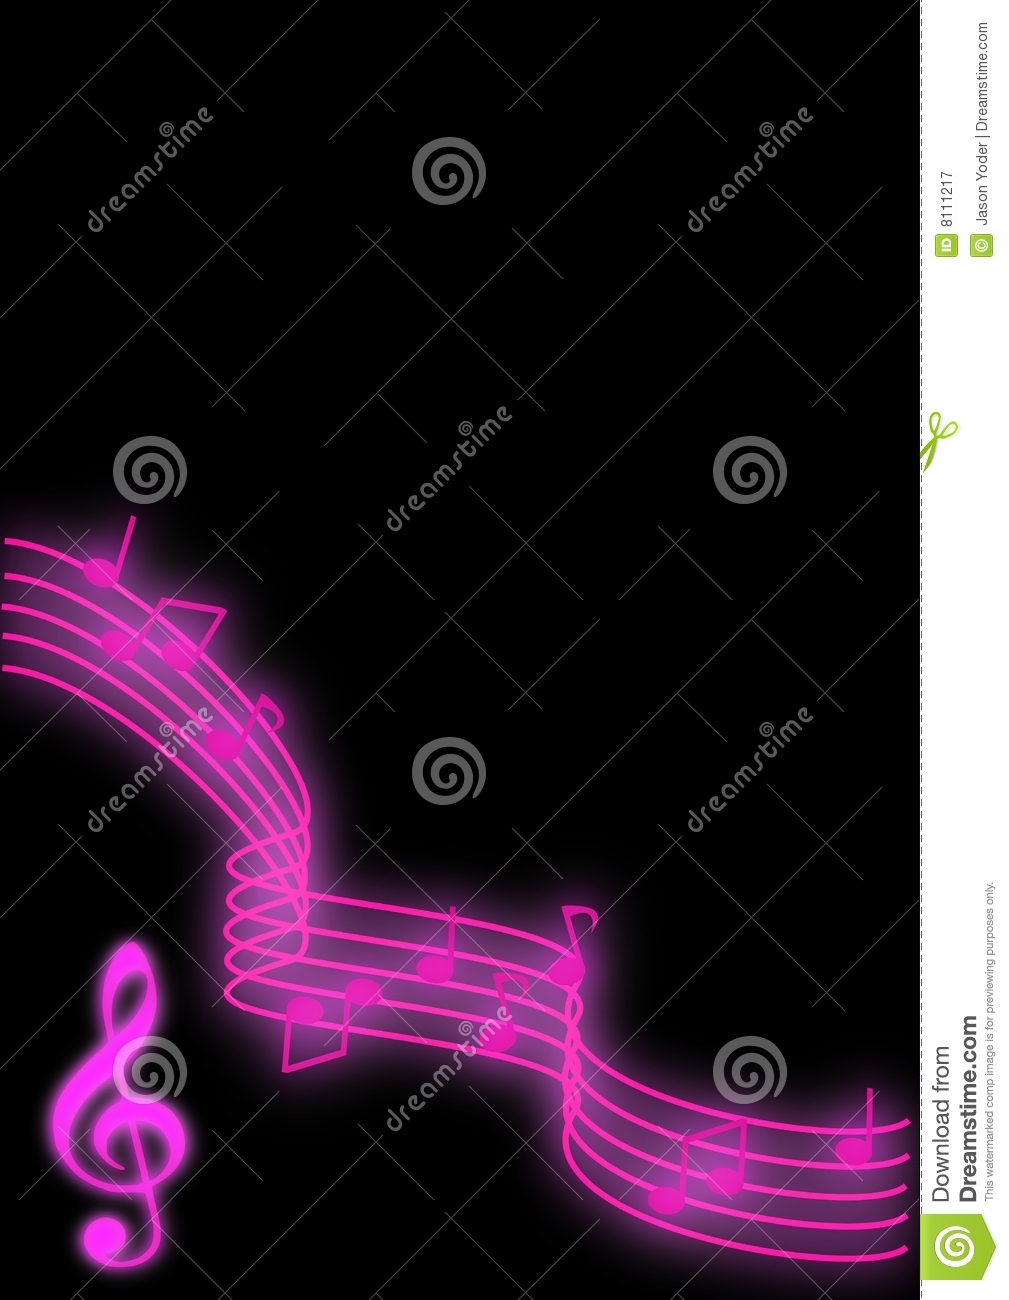 Music Notes Royalty Free Stock Photography - Image: 8111217